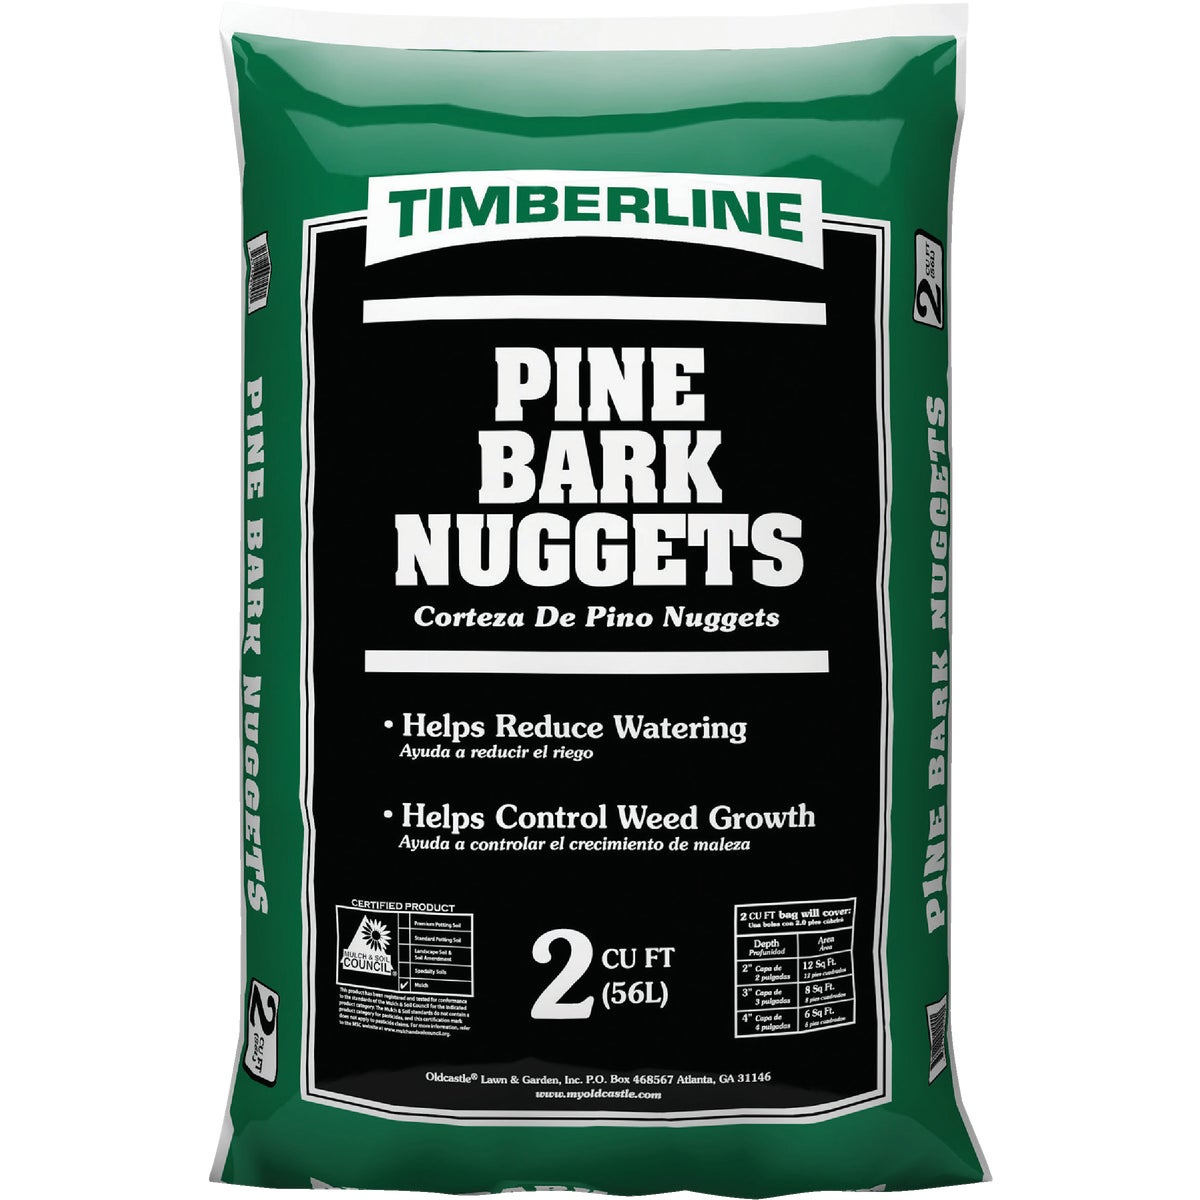 2CU FT PINE BARK NUGGETS